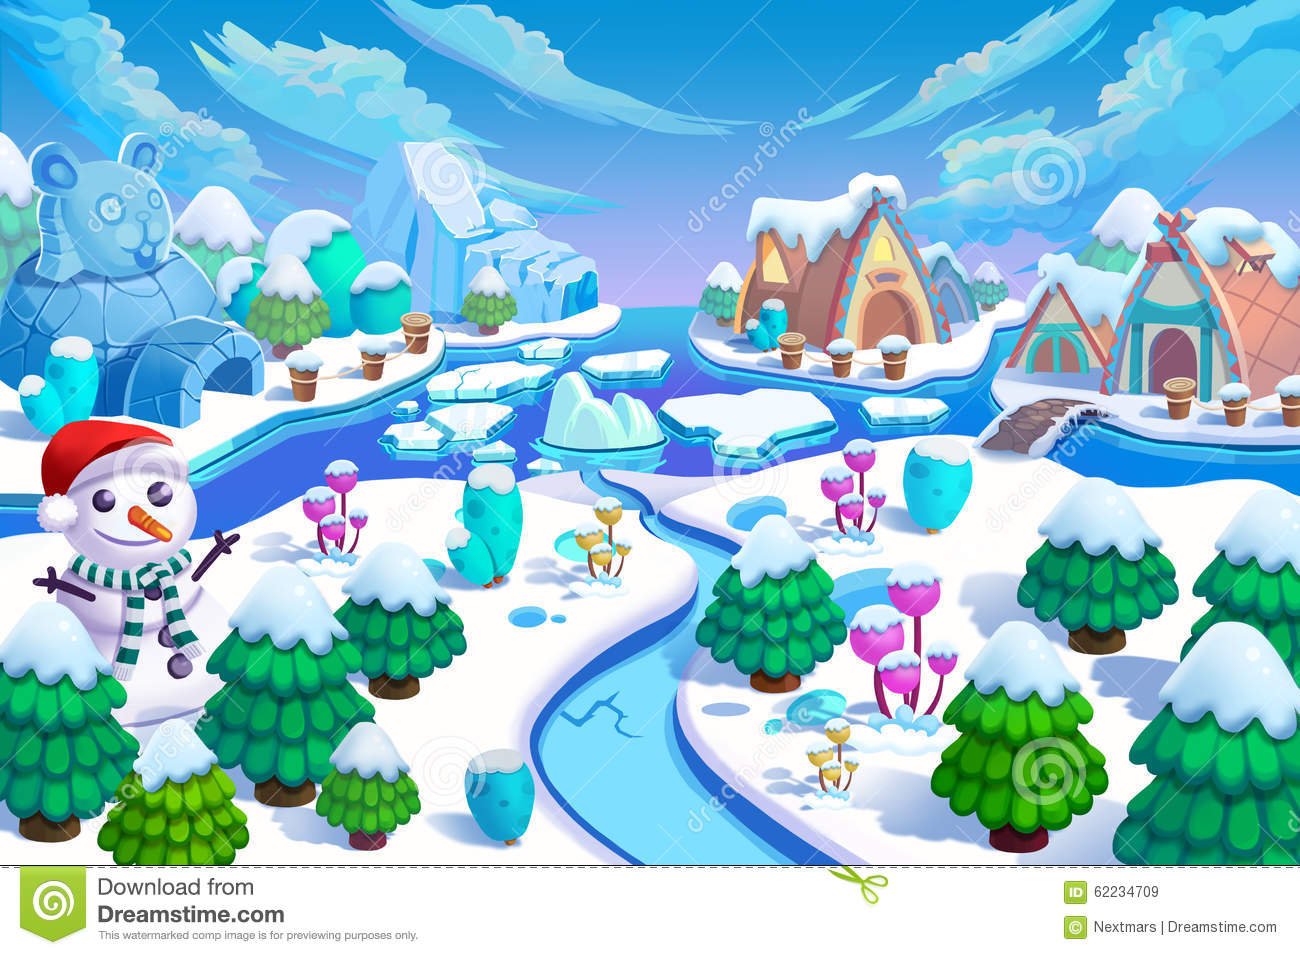 Illustration The Entrance Of The Snow World Snow Man